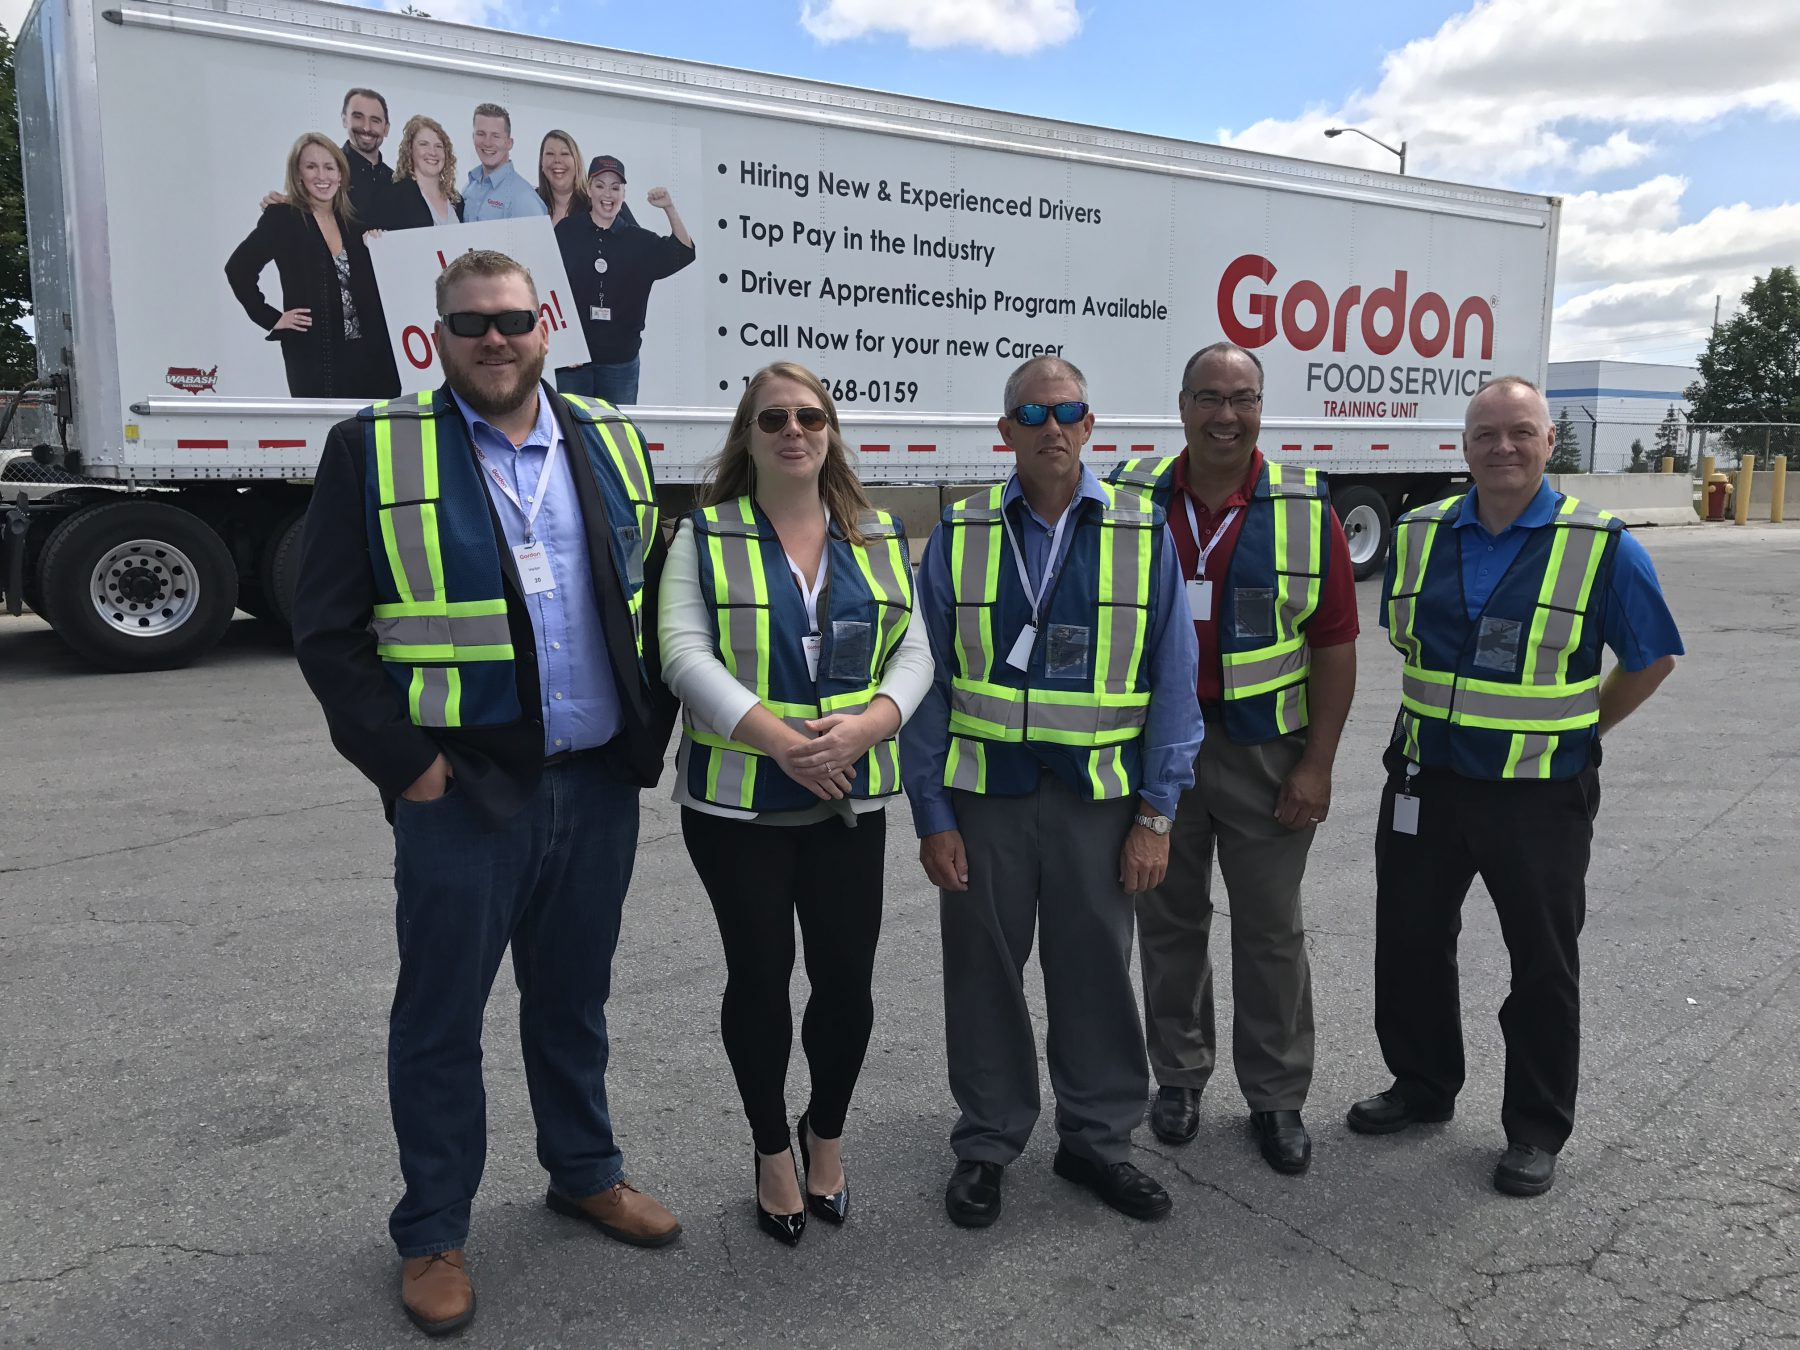 Gordon FOODS PMTC